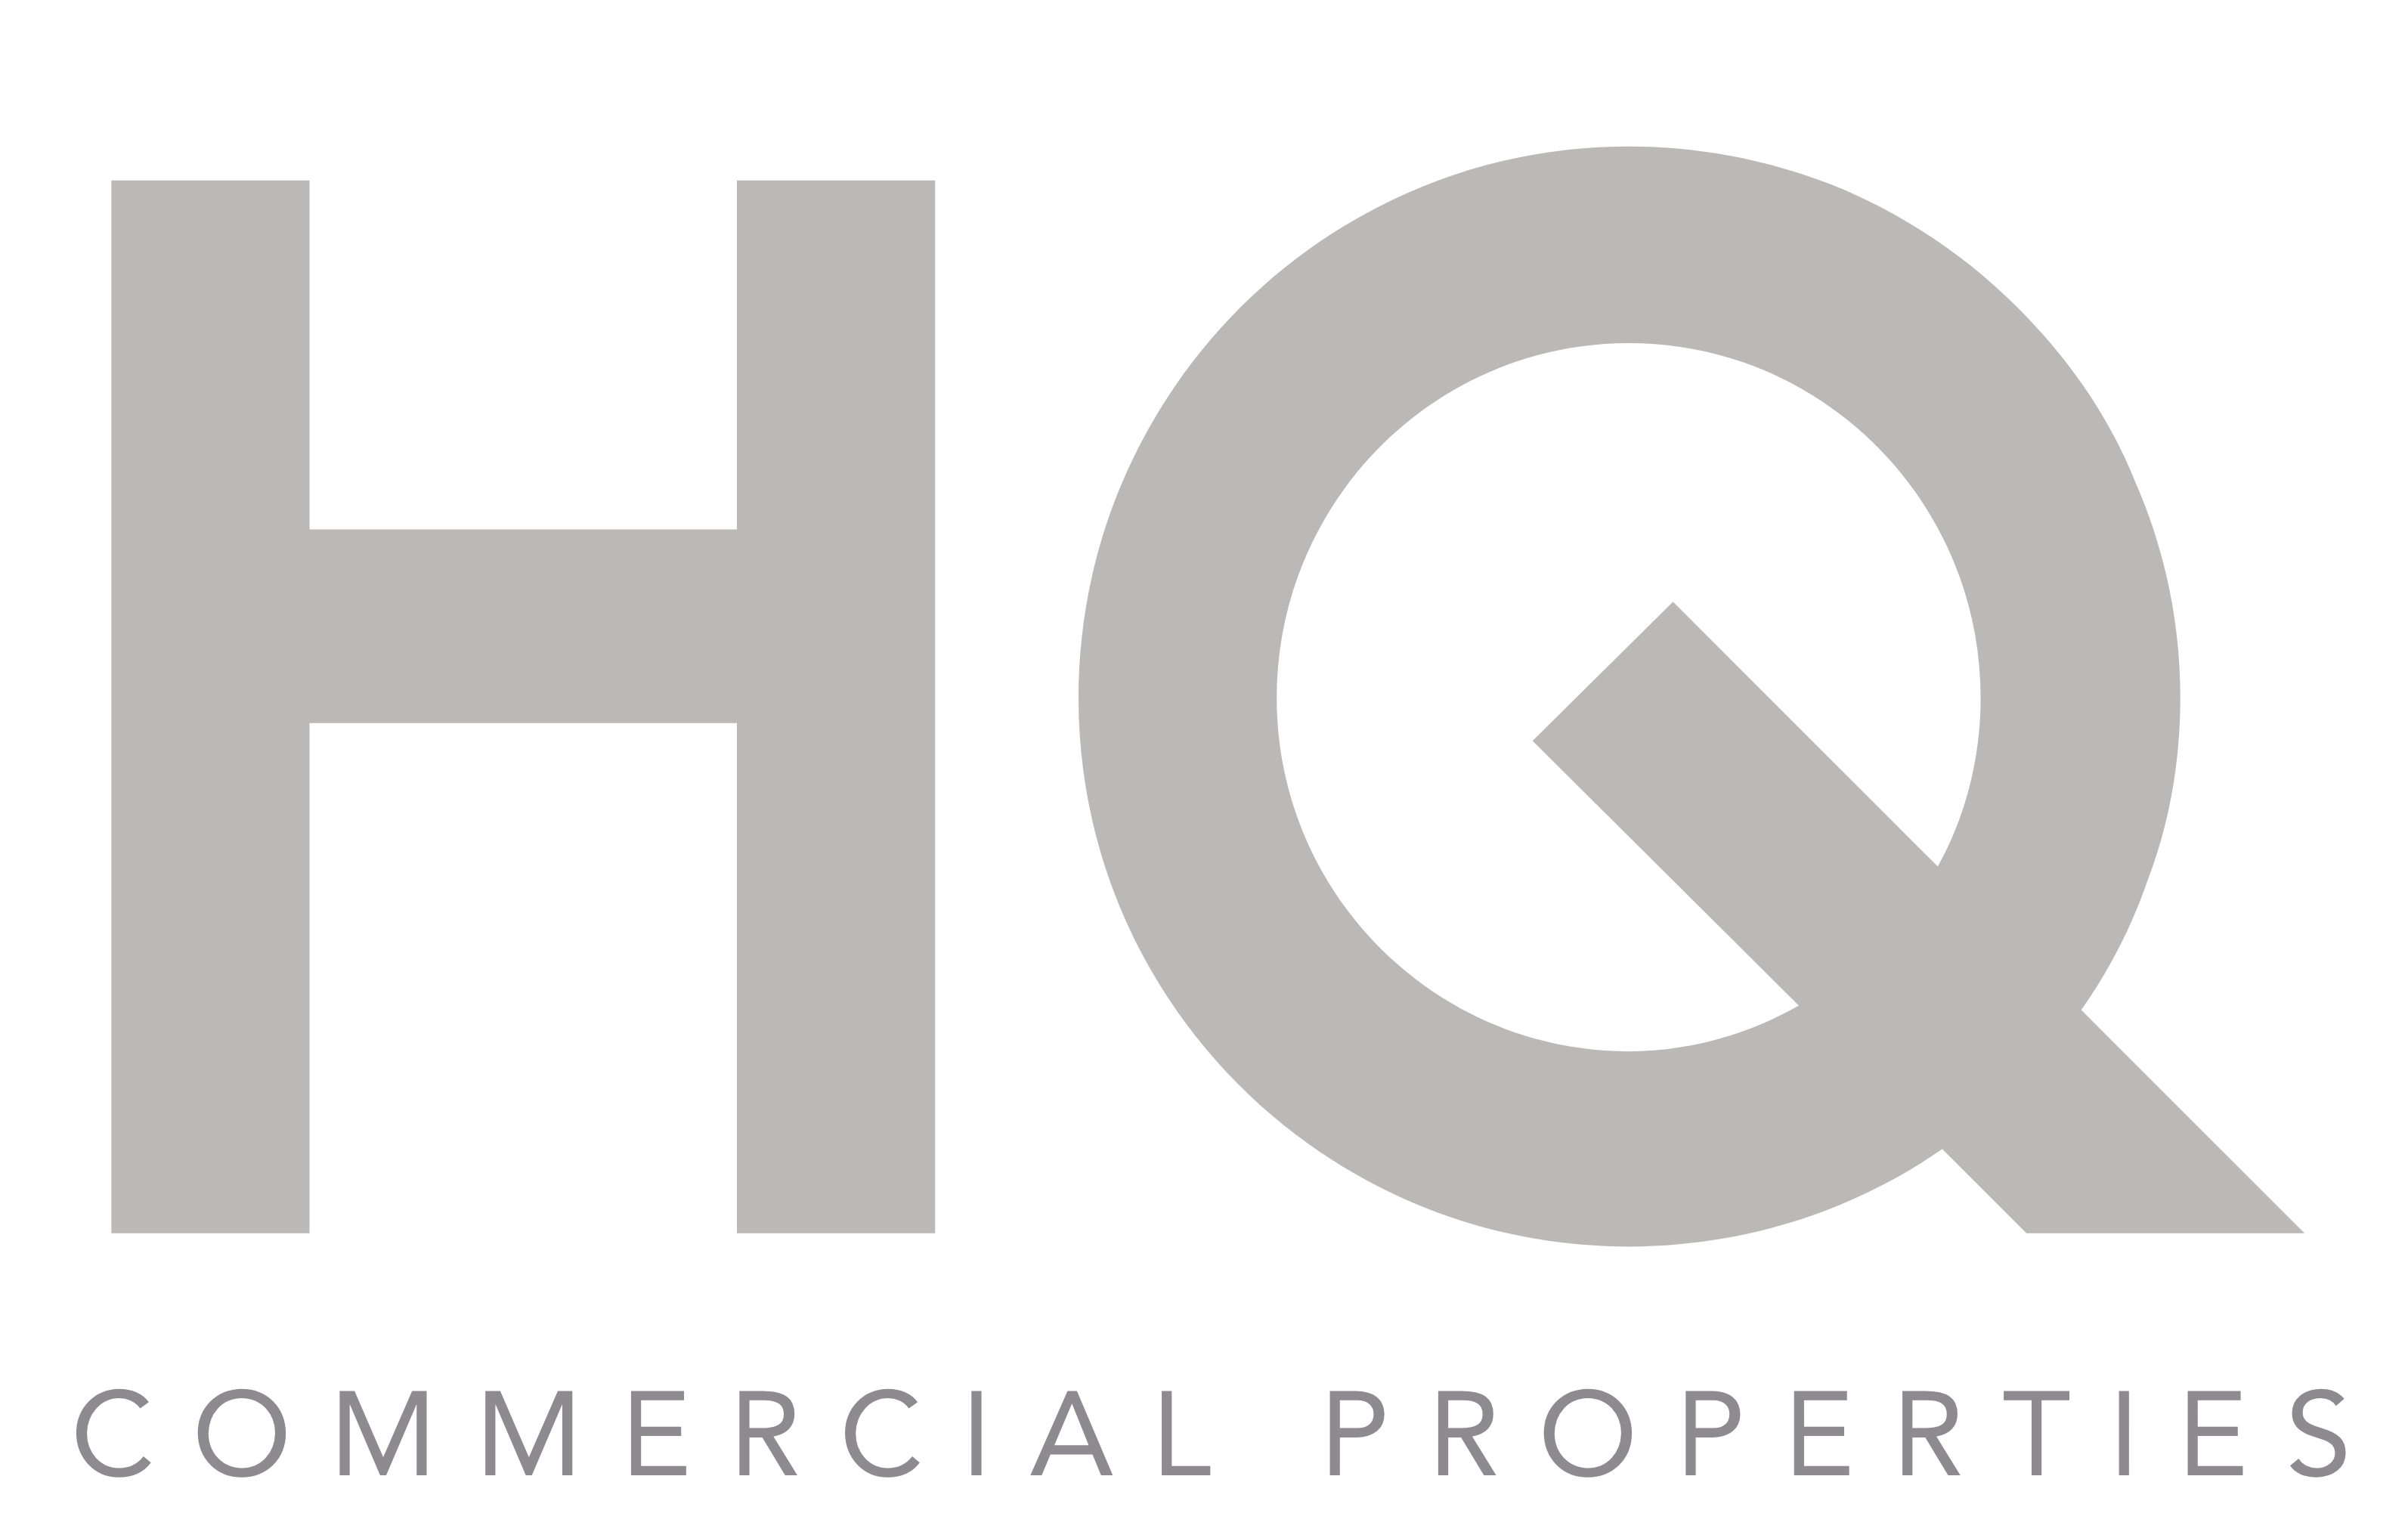 Home Quest Commercial Properties | Your solution for Commercial Investments, Leasing, & Representation